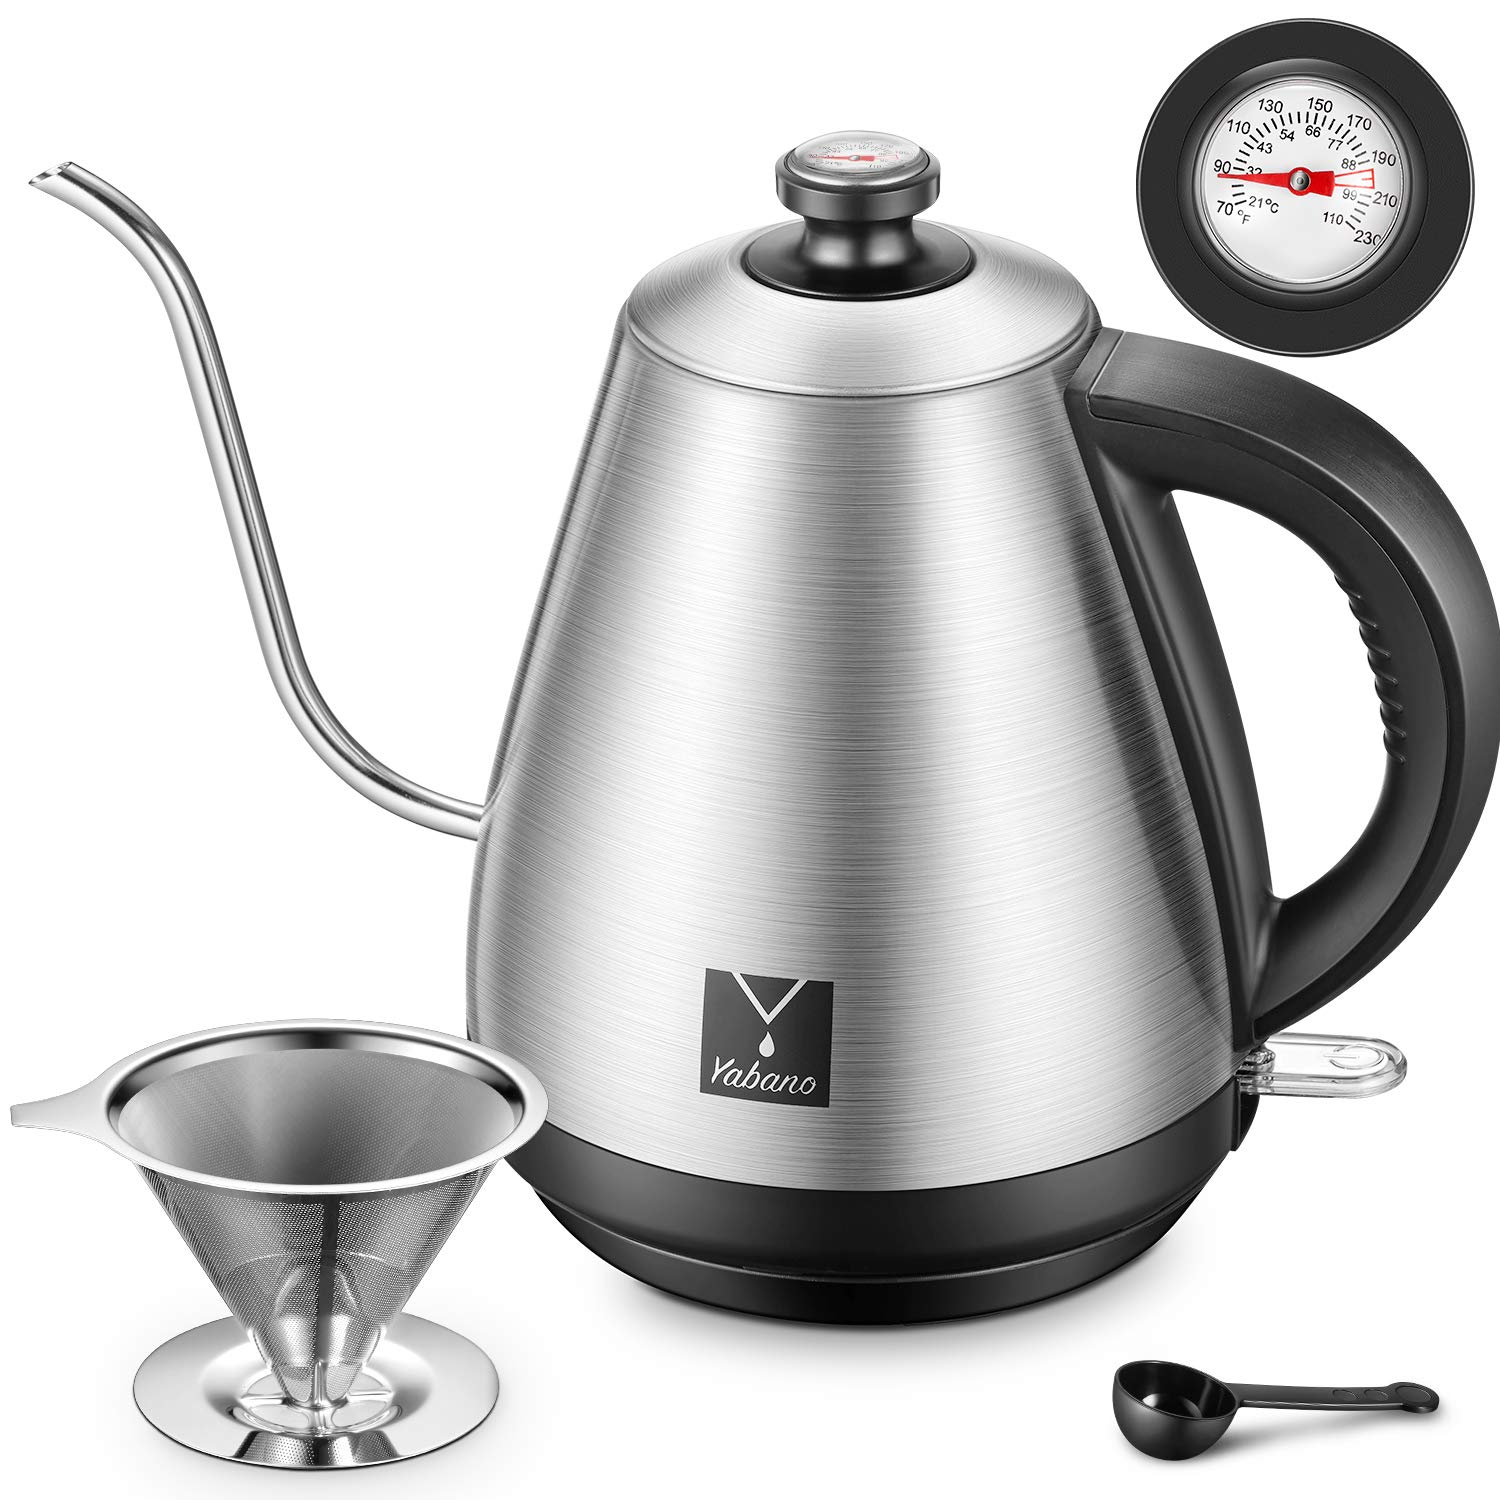 Electric Kettle, Yabano Gooseneck Kettle, Pour Over Coffee Maker with Integrated Thermometer for Coffee, Tea, Stainless Steel Coffee Teapots Kettle with Coffee Filter and Spoon, Auto Shut-Off, 1000W